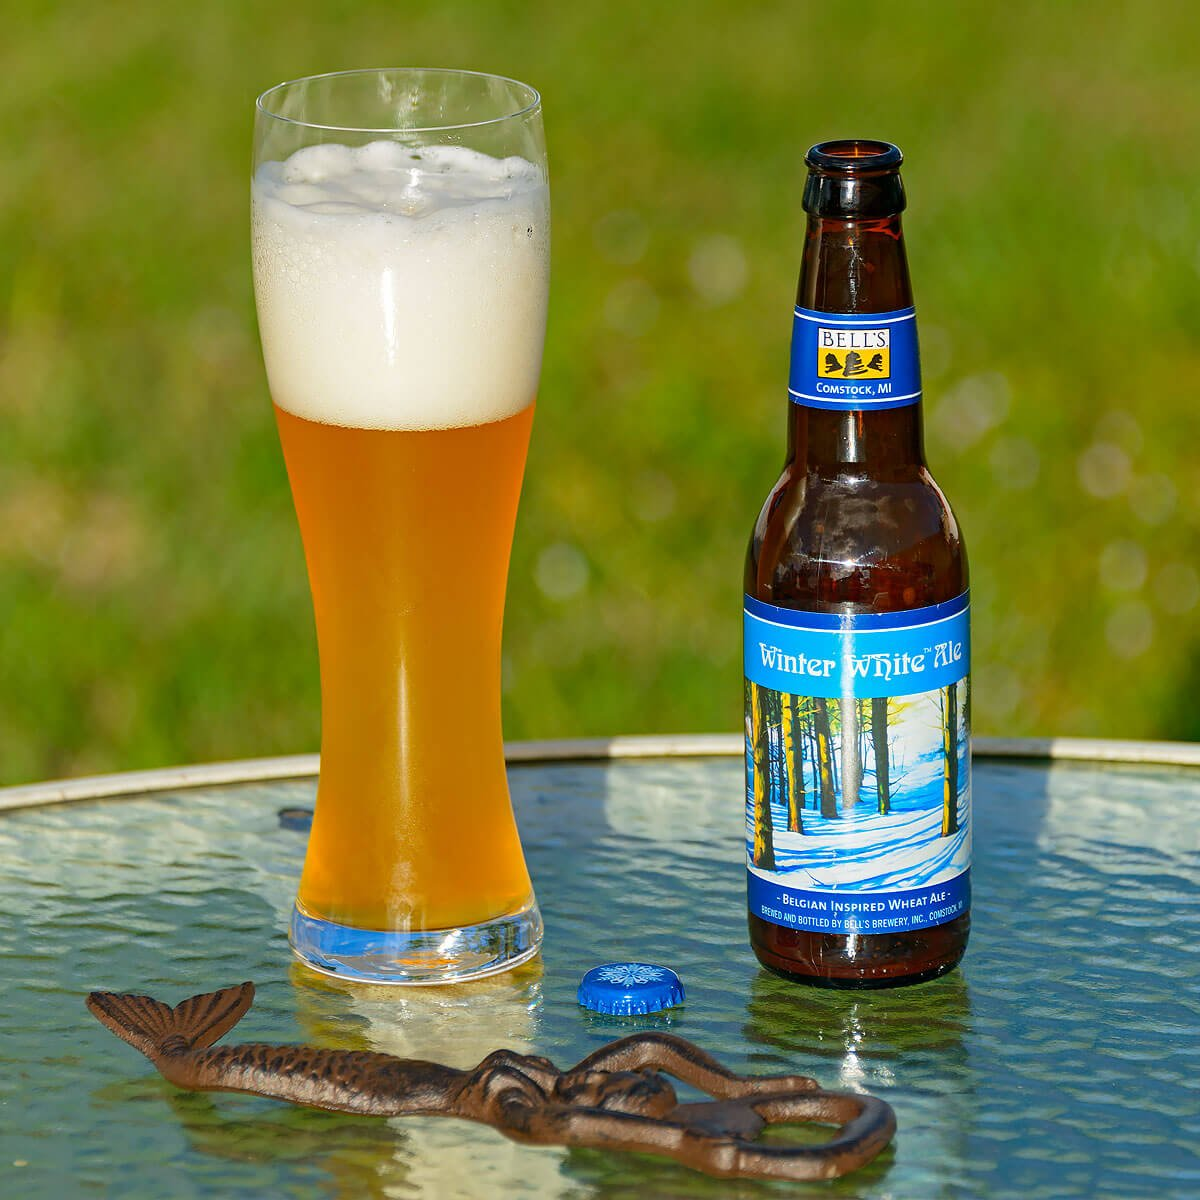 Bright White Ale (formerly Winter White Ale) is a Belgian-style Witbier by Bell's Brewery, Inc.